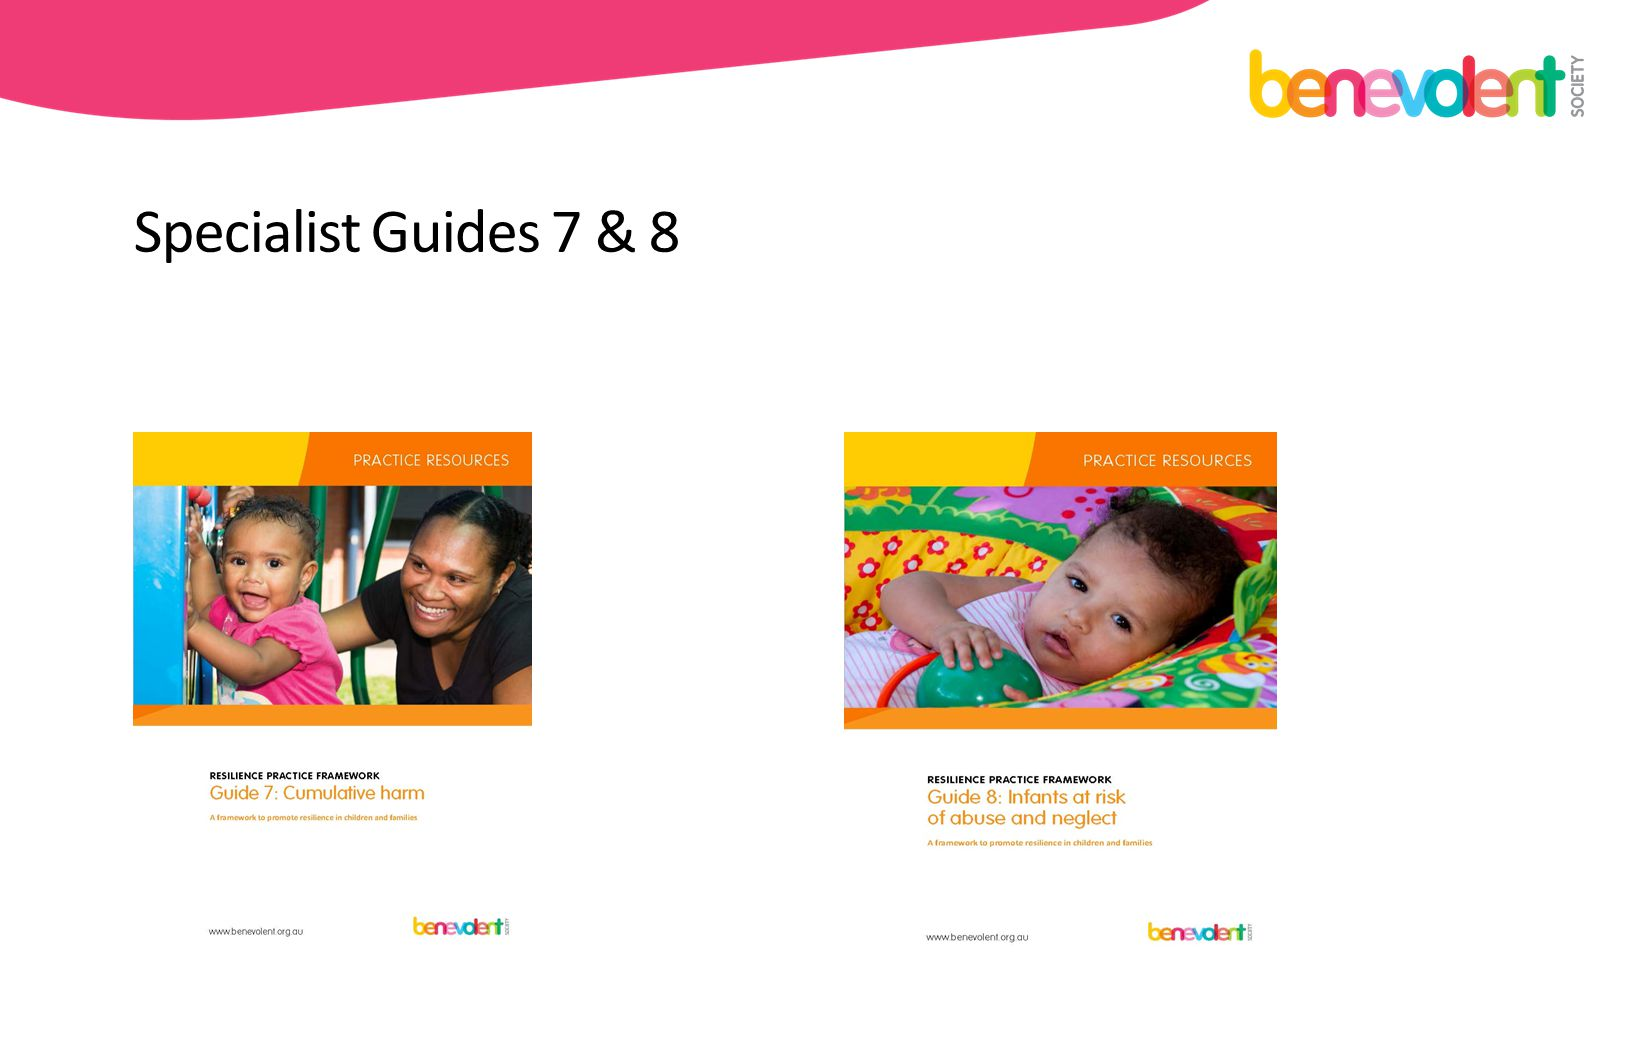 Specialist Guides 7 & 8